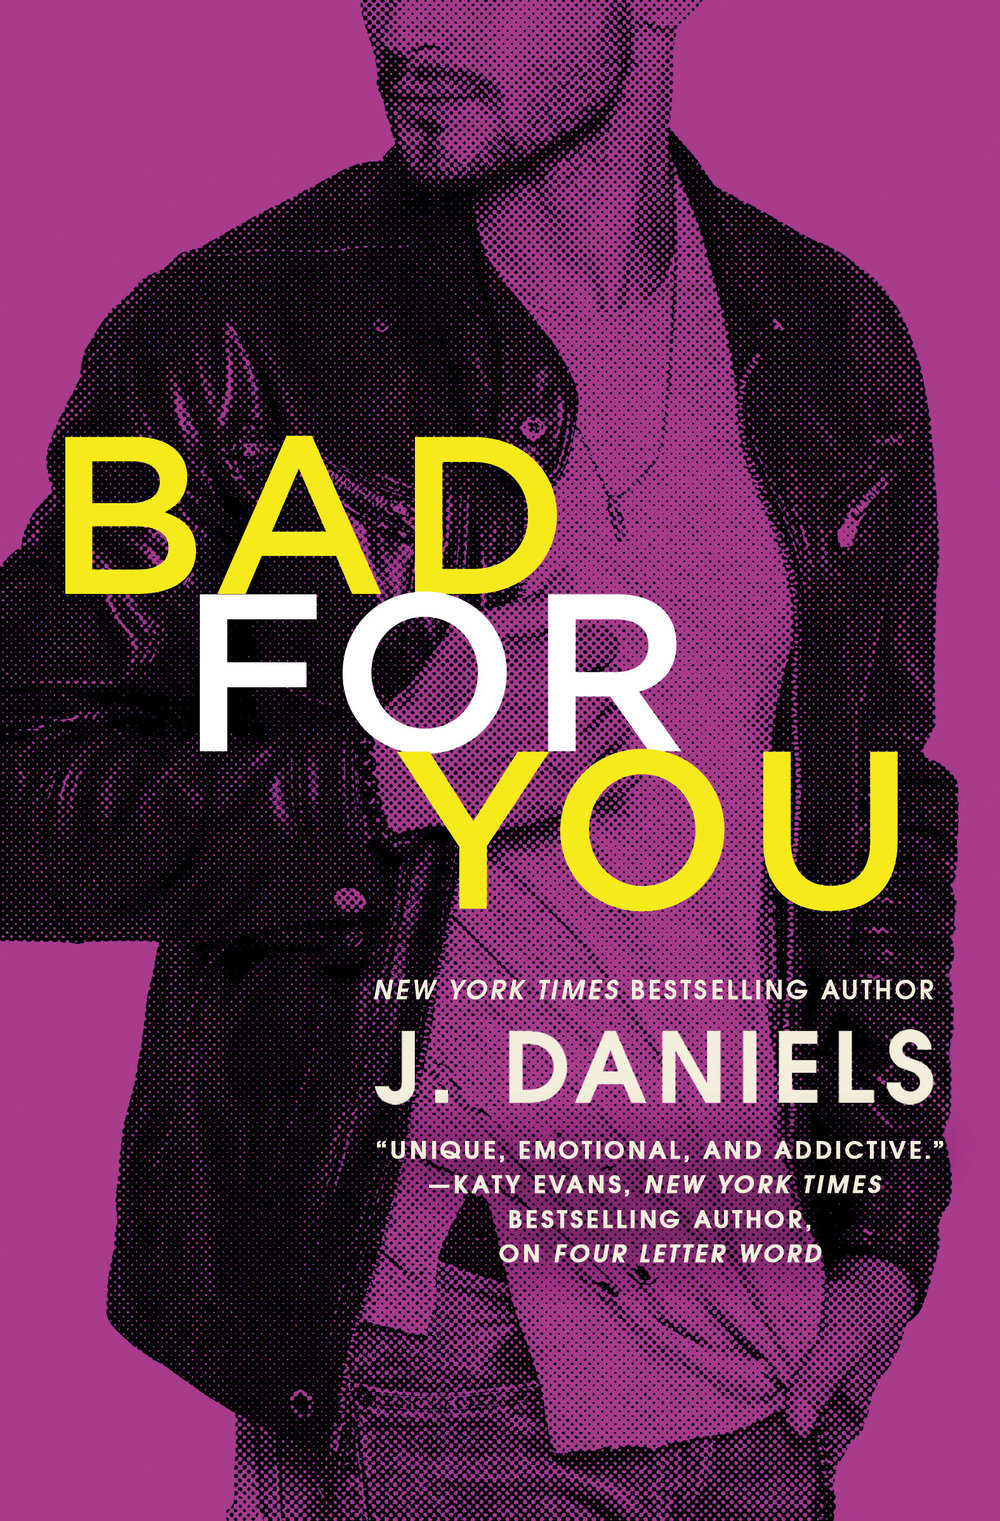 "BAD FOR YOU ~ A Dirty Deeds Novel ~ BY J.Daniels    Release Day: January 23, 2018    ""If you're a fan of Kristen Ashley, then you will love this book."" -Aestas Book Blog on Four Letter Word    He didn't want to be bad. He just didn't have a choice...    Shayla Perkins isn't the kind of girl who makes the same mistake twice, especially when it comes to Sean ""Stitch"" Molina. So when he gives her the world's biggest rejection, that's it--she's done. Until the sexy, silent, unavailable Sean makes Shay a very personal offer. Of course, it still doesn't mean he's interested in her. Or does it?    Sean has done things in life. Bad things. And he's paid the price. All he wants now is to make up for his past by doing good in the present. And no one deserves more good than Shay. Beautiful on the inside and out, Shay is the kind of woman who should be cared for and protected--especially from a man like Sean. He's tried to keep his feelings for her in check, but a single, reckless impulse pulls them closer than ever before.    Soon the two are sharing their biggest dreams and satisfying their deepest desires. But what will happen if the only way to truly give each other what they want most...is to let each other go?    ""The perfect mix of funny, hot and heartwarming. I enjoyed it immensely!"" --Mia Sheridan, New York Times bestselling author, on Four Letter Word"